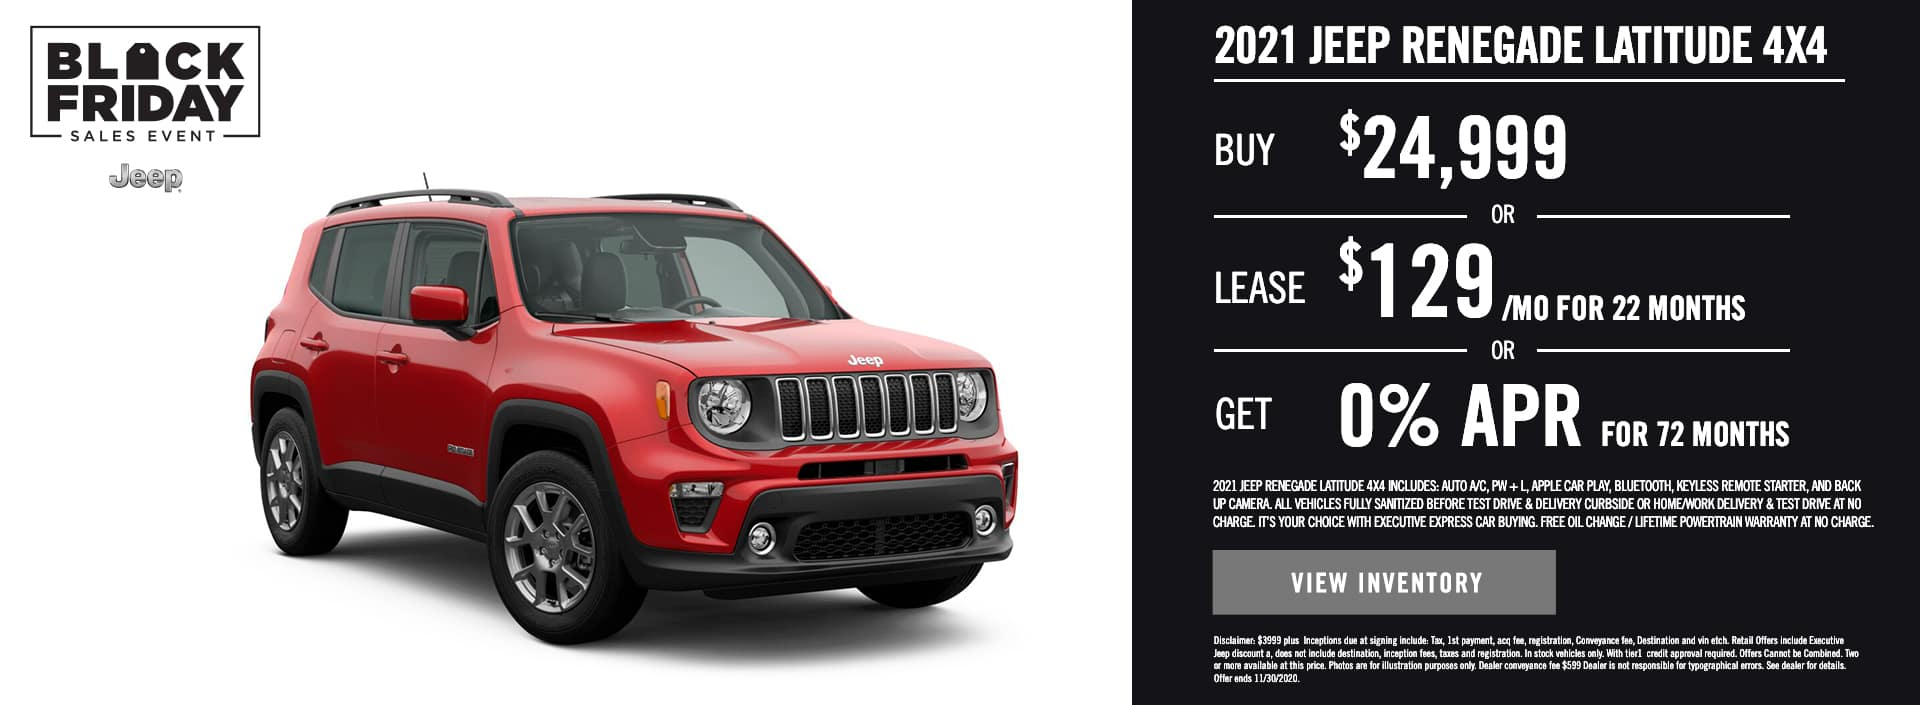 2021 Jeep Renegade latitude 4×4 (1)